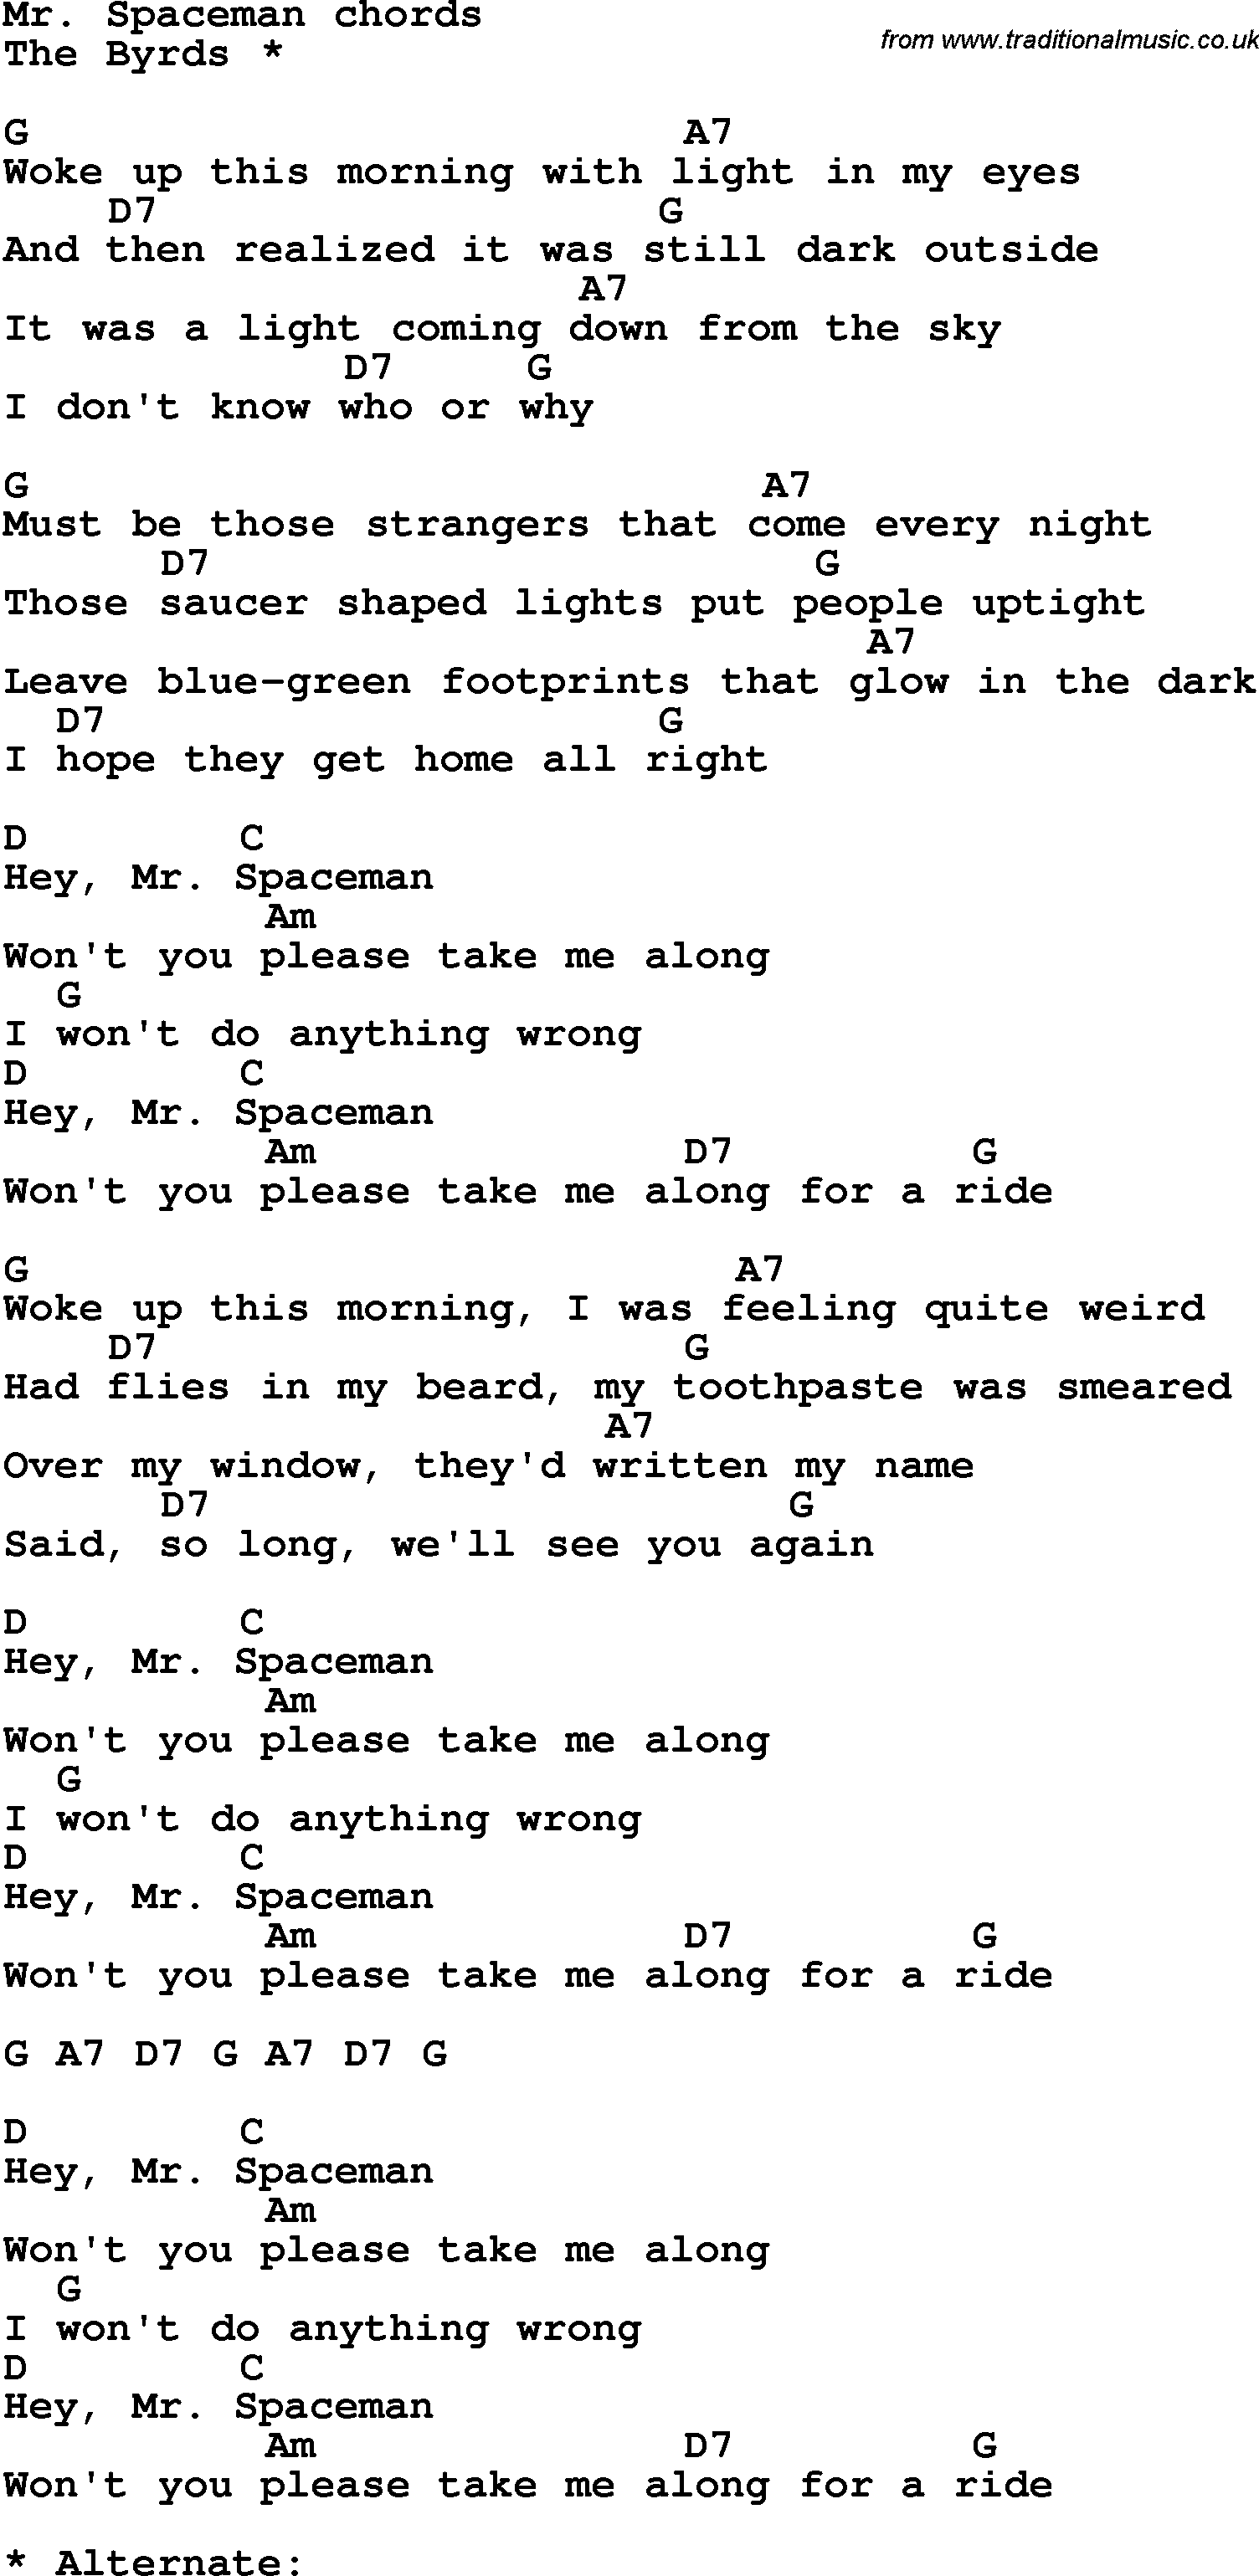 Song Lyrics With Guitar Chords For Mr Spaceman